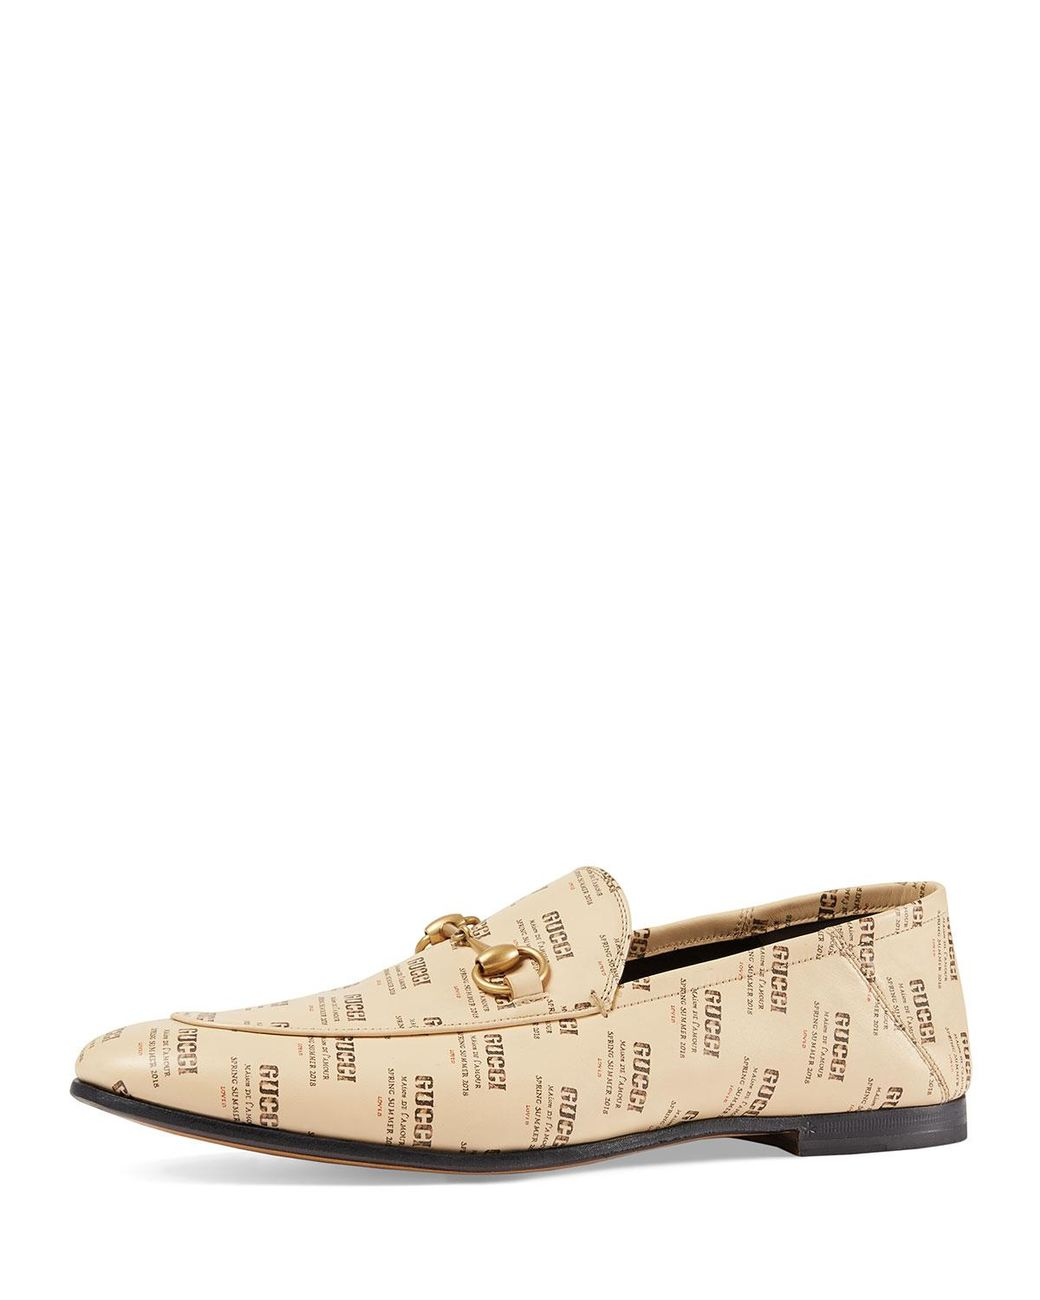 09a6c835e6b Lyst - Gucci Leather Invite Print Loafer in Natural for Men - Save 56%